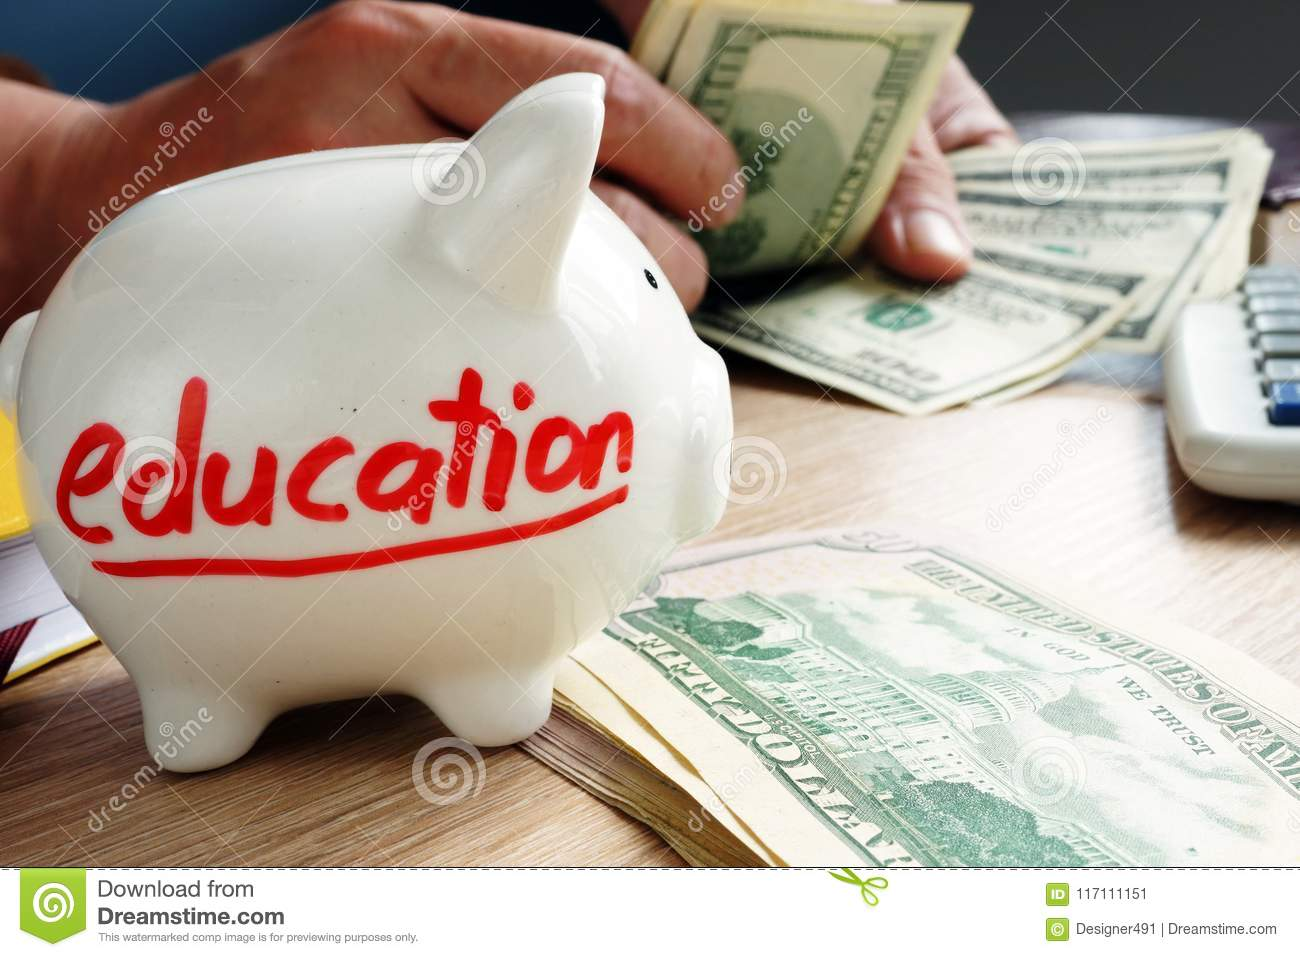 Savings for education. Hands counting money.